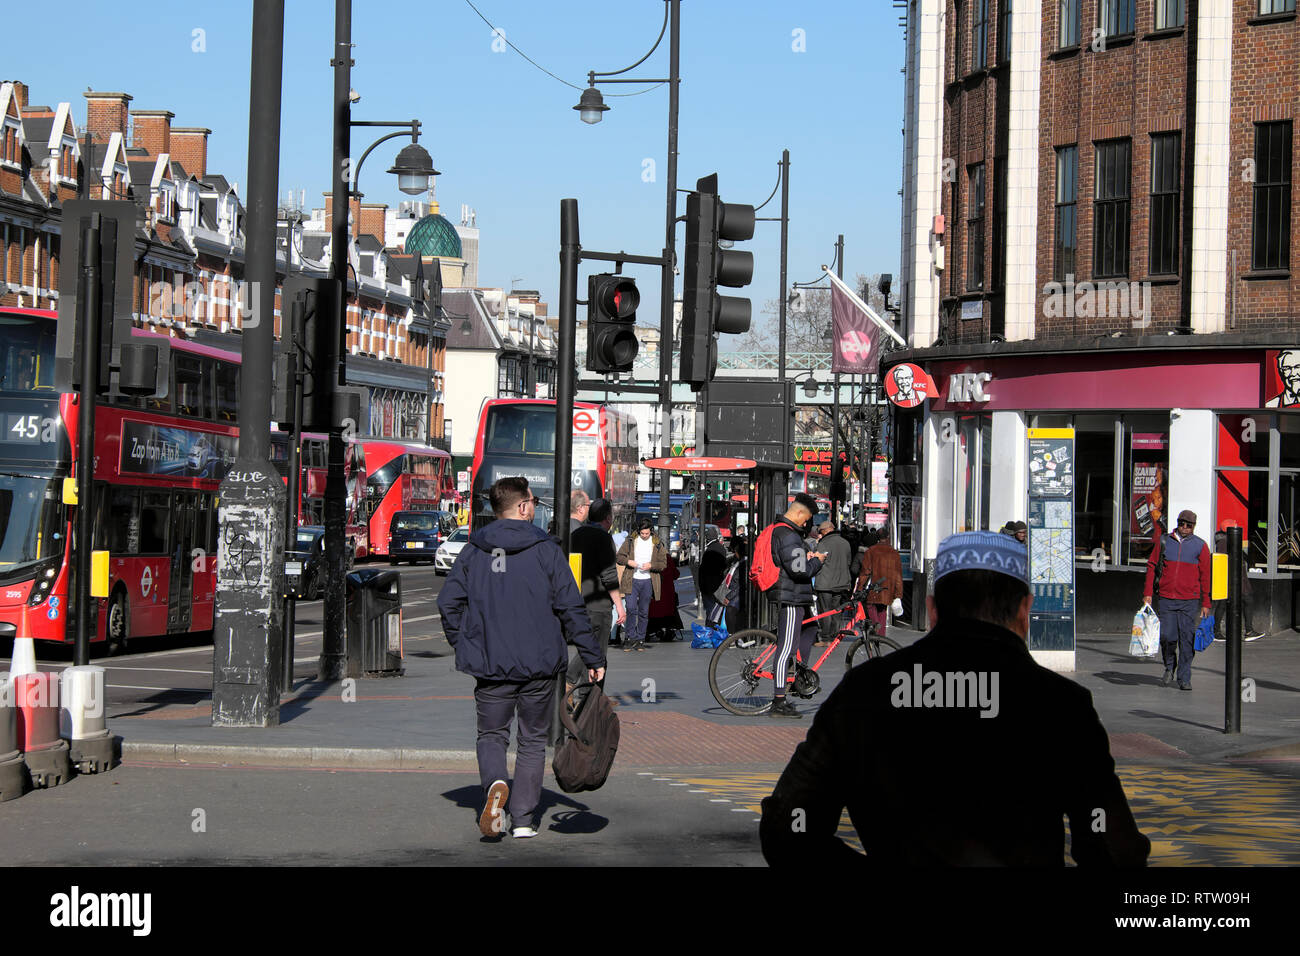 People walking along busy Brixton Road crossing the street at traffic lights and buses in Brixton, Borough of Lambeth, South London UK   KATHY DEWITT - Stock Image